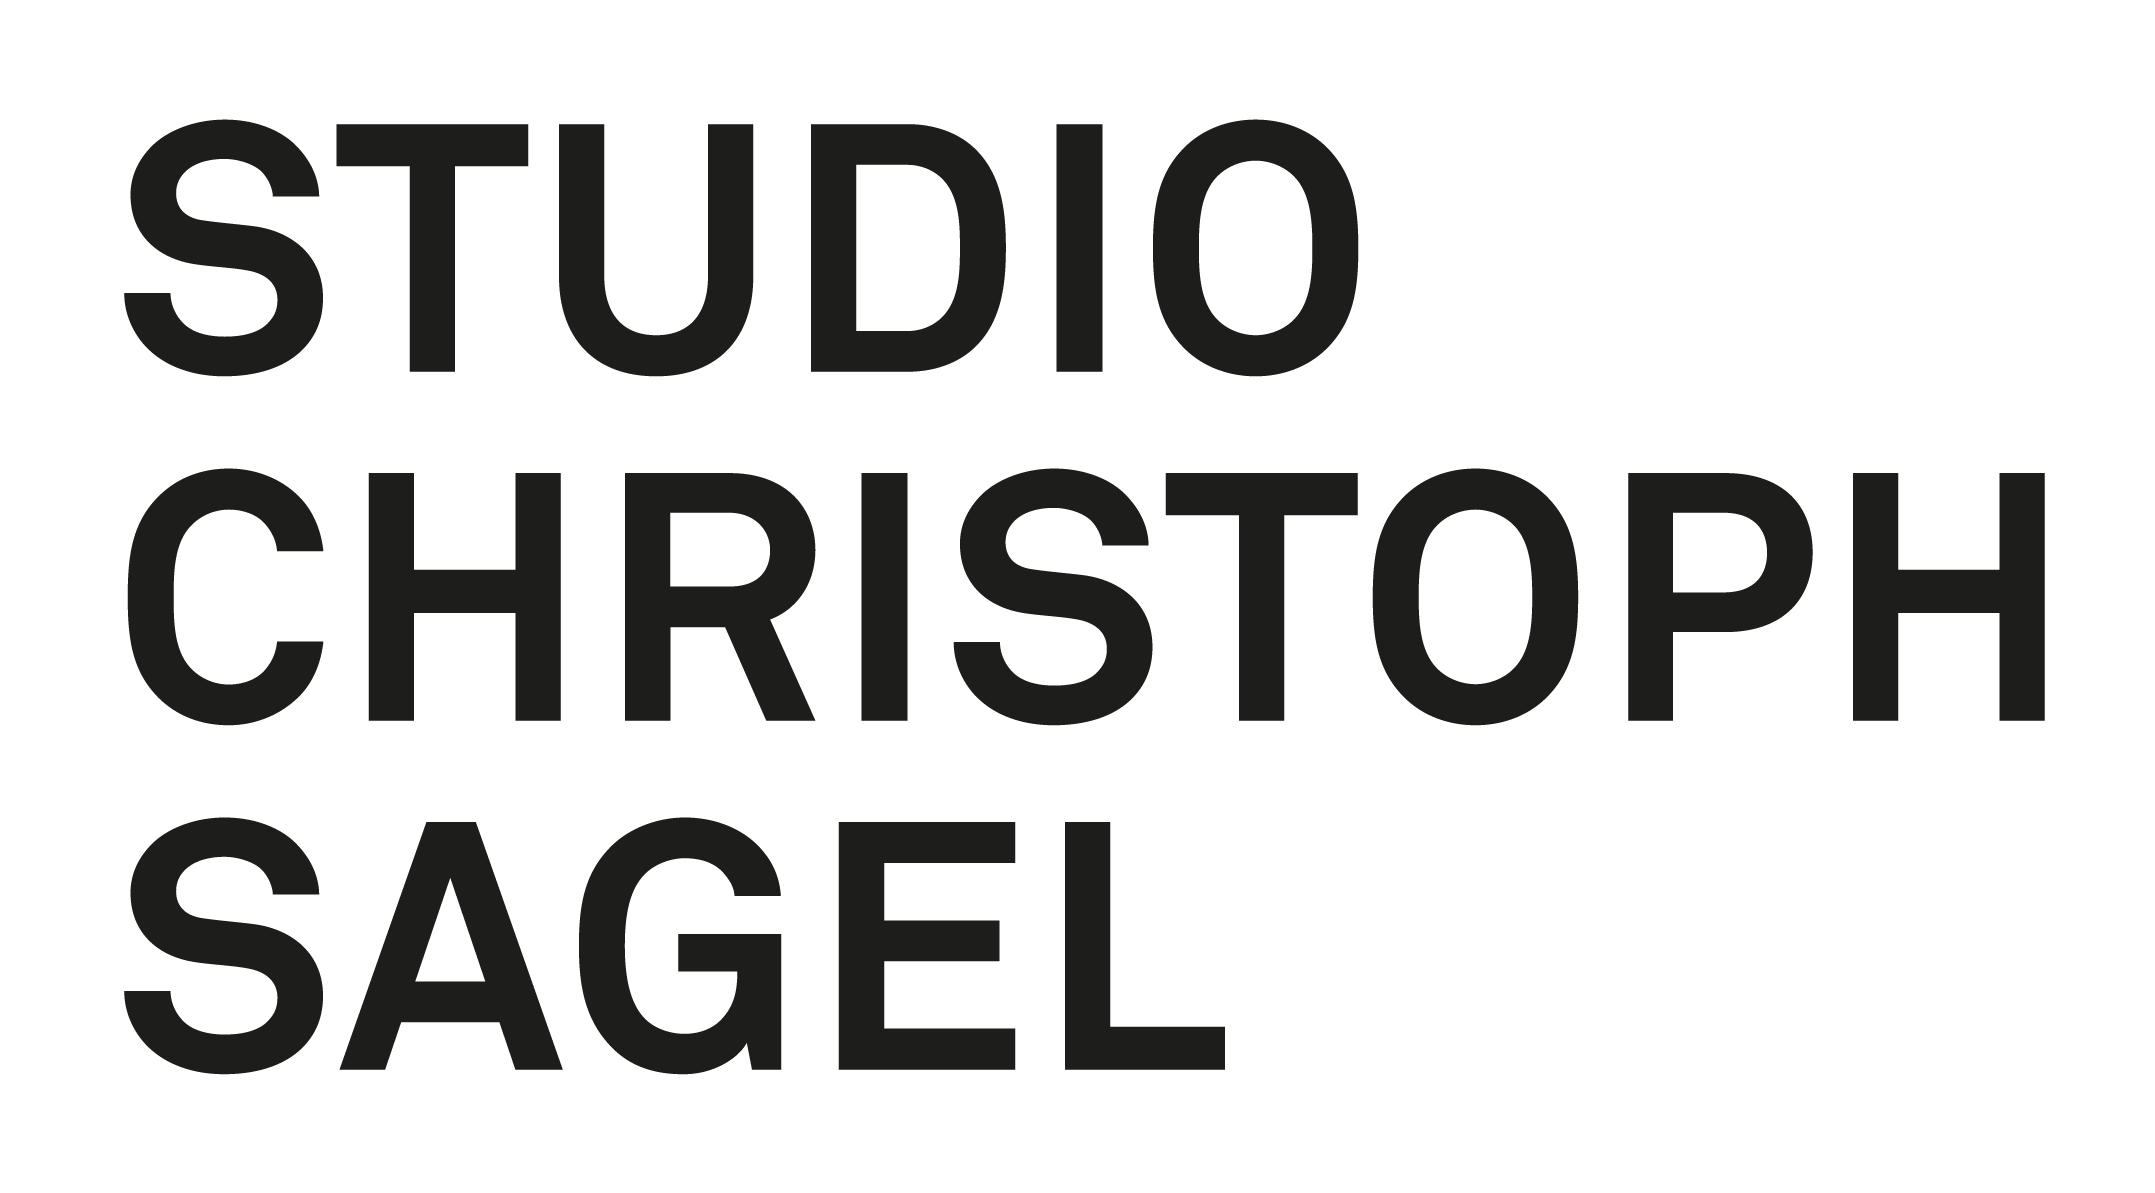 STUDIO CHRISTOPH SAGEL